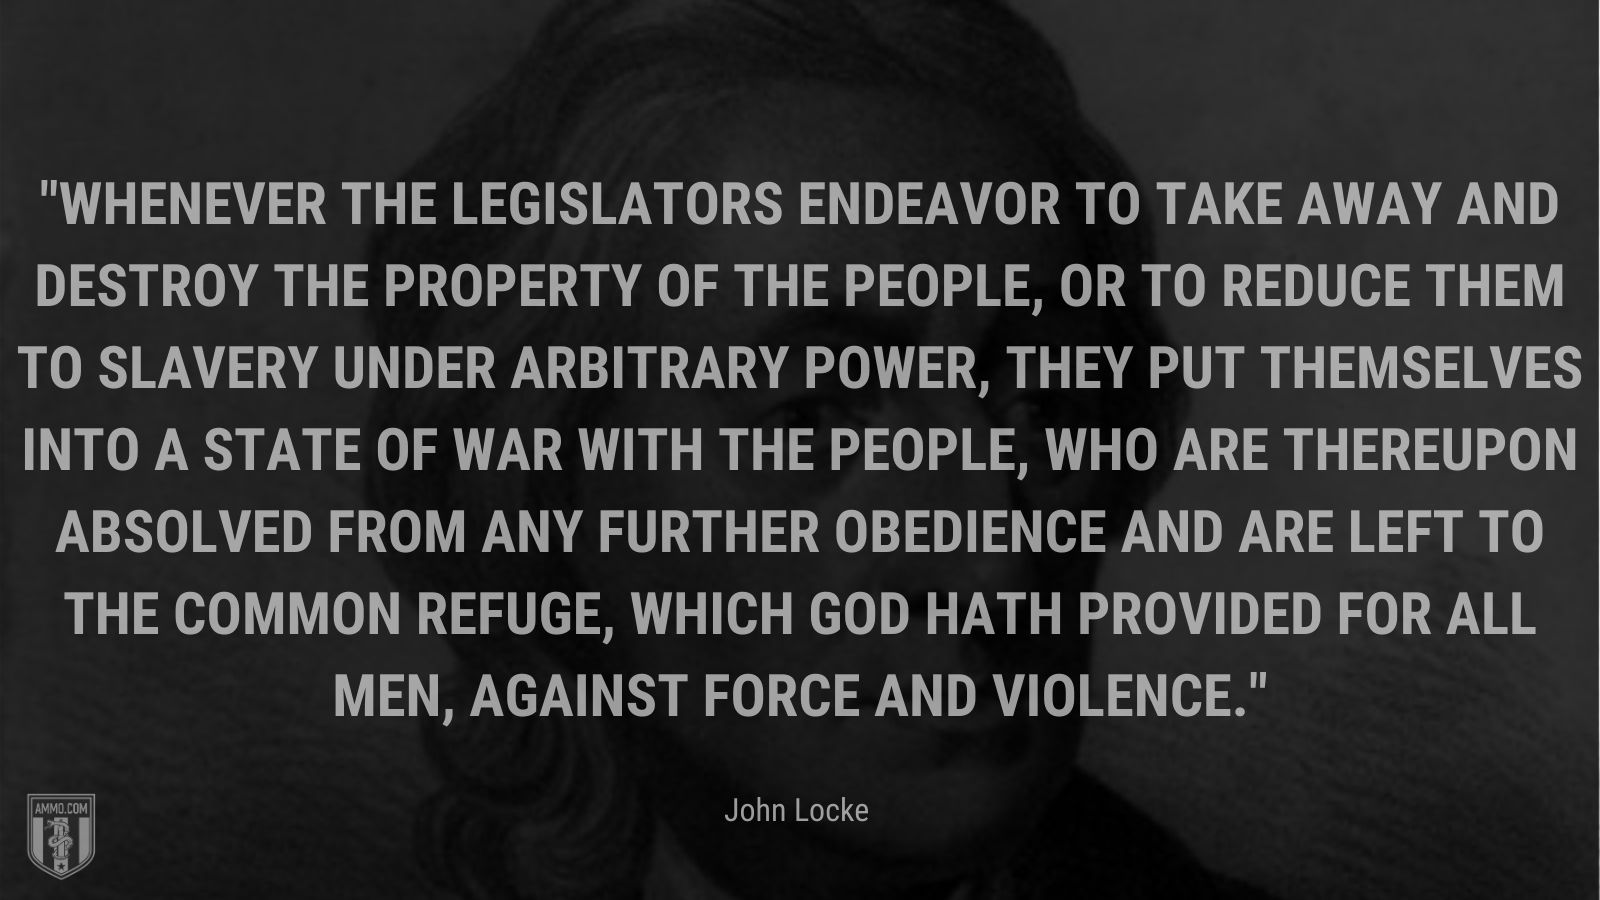 """""""Whenever the legislators endeavor to take away and destroy the property of the people, or to reduce them to slavery under arbitrary power, they put themselves into a state of war with the people, who are thereupon absolved from any further obedience and are left to the common refuge, which God hath provided for all men, against force and violence. - John Locke"""